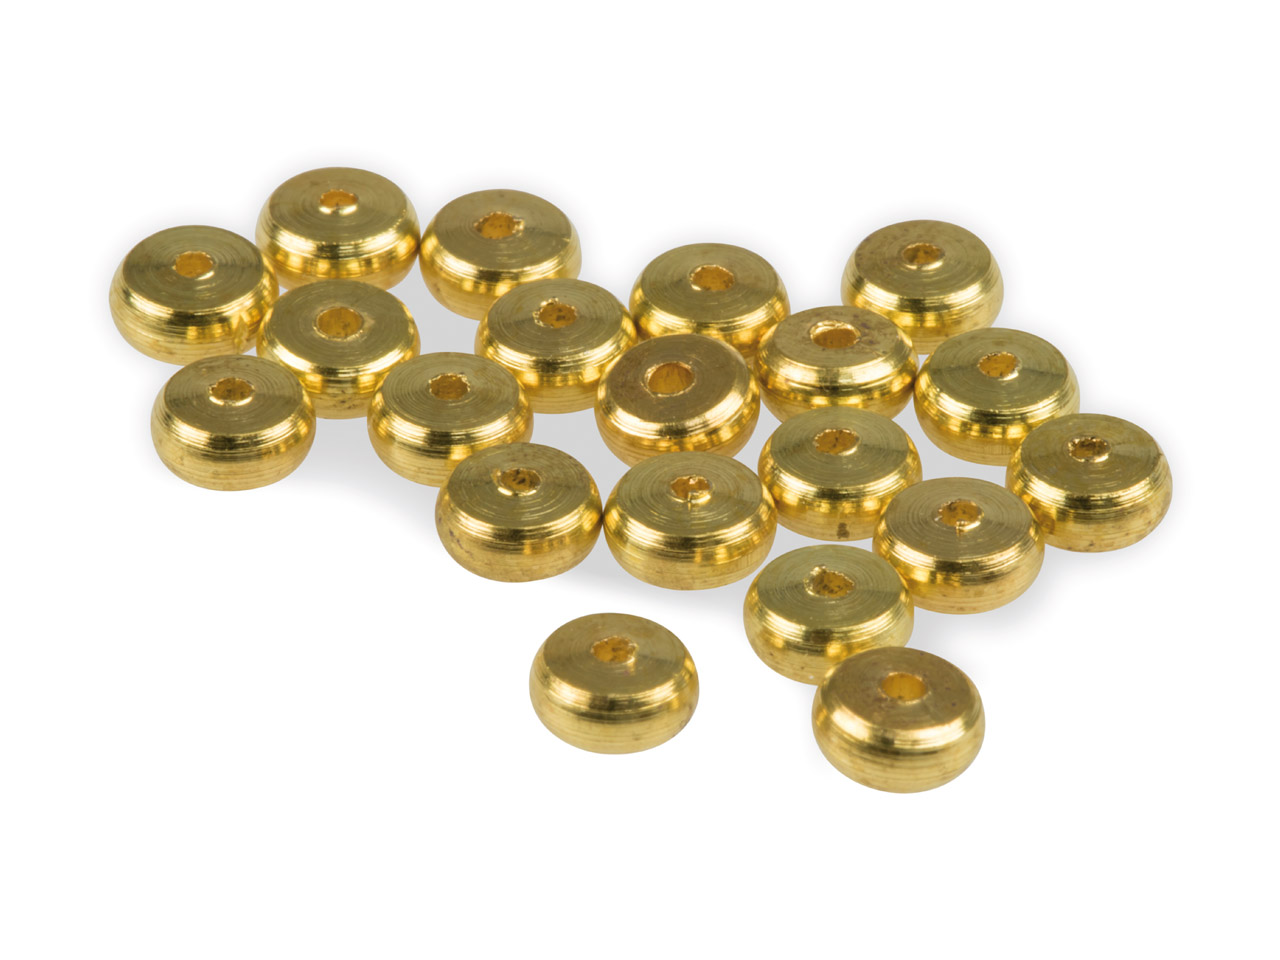 Gold Plated Rondelle Spacer Beads  2x4mm Pack of 20